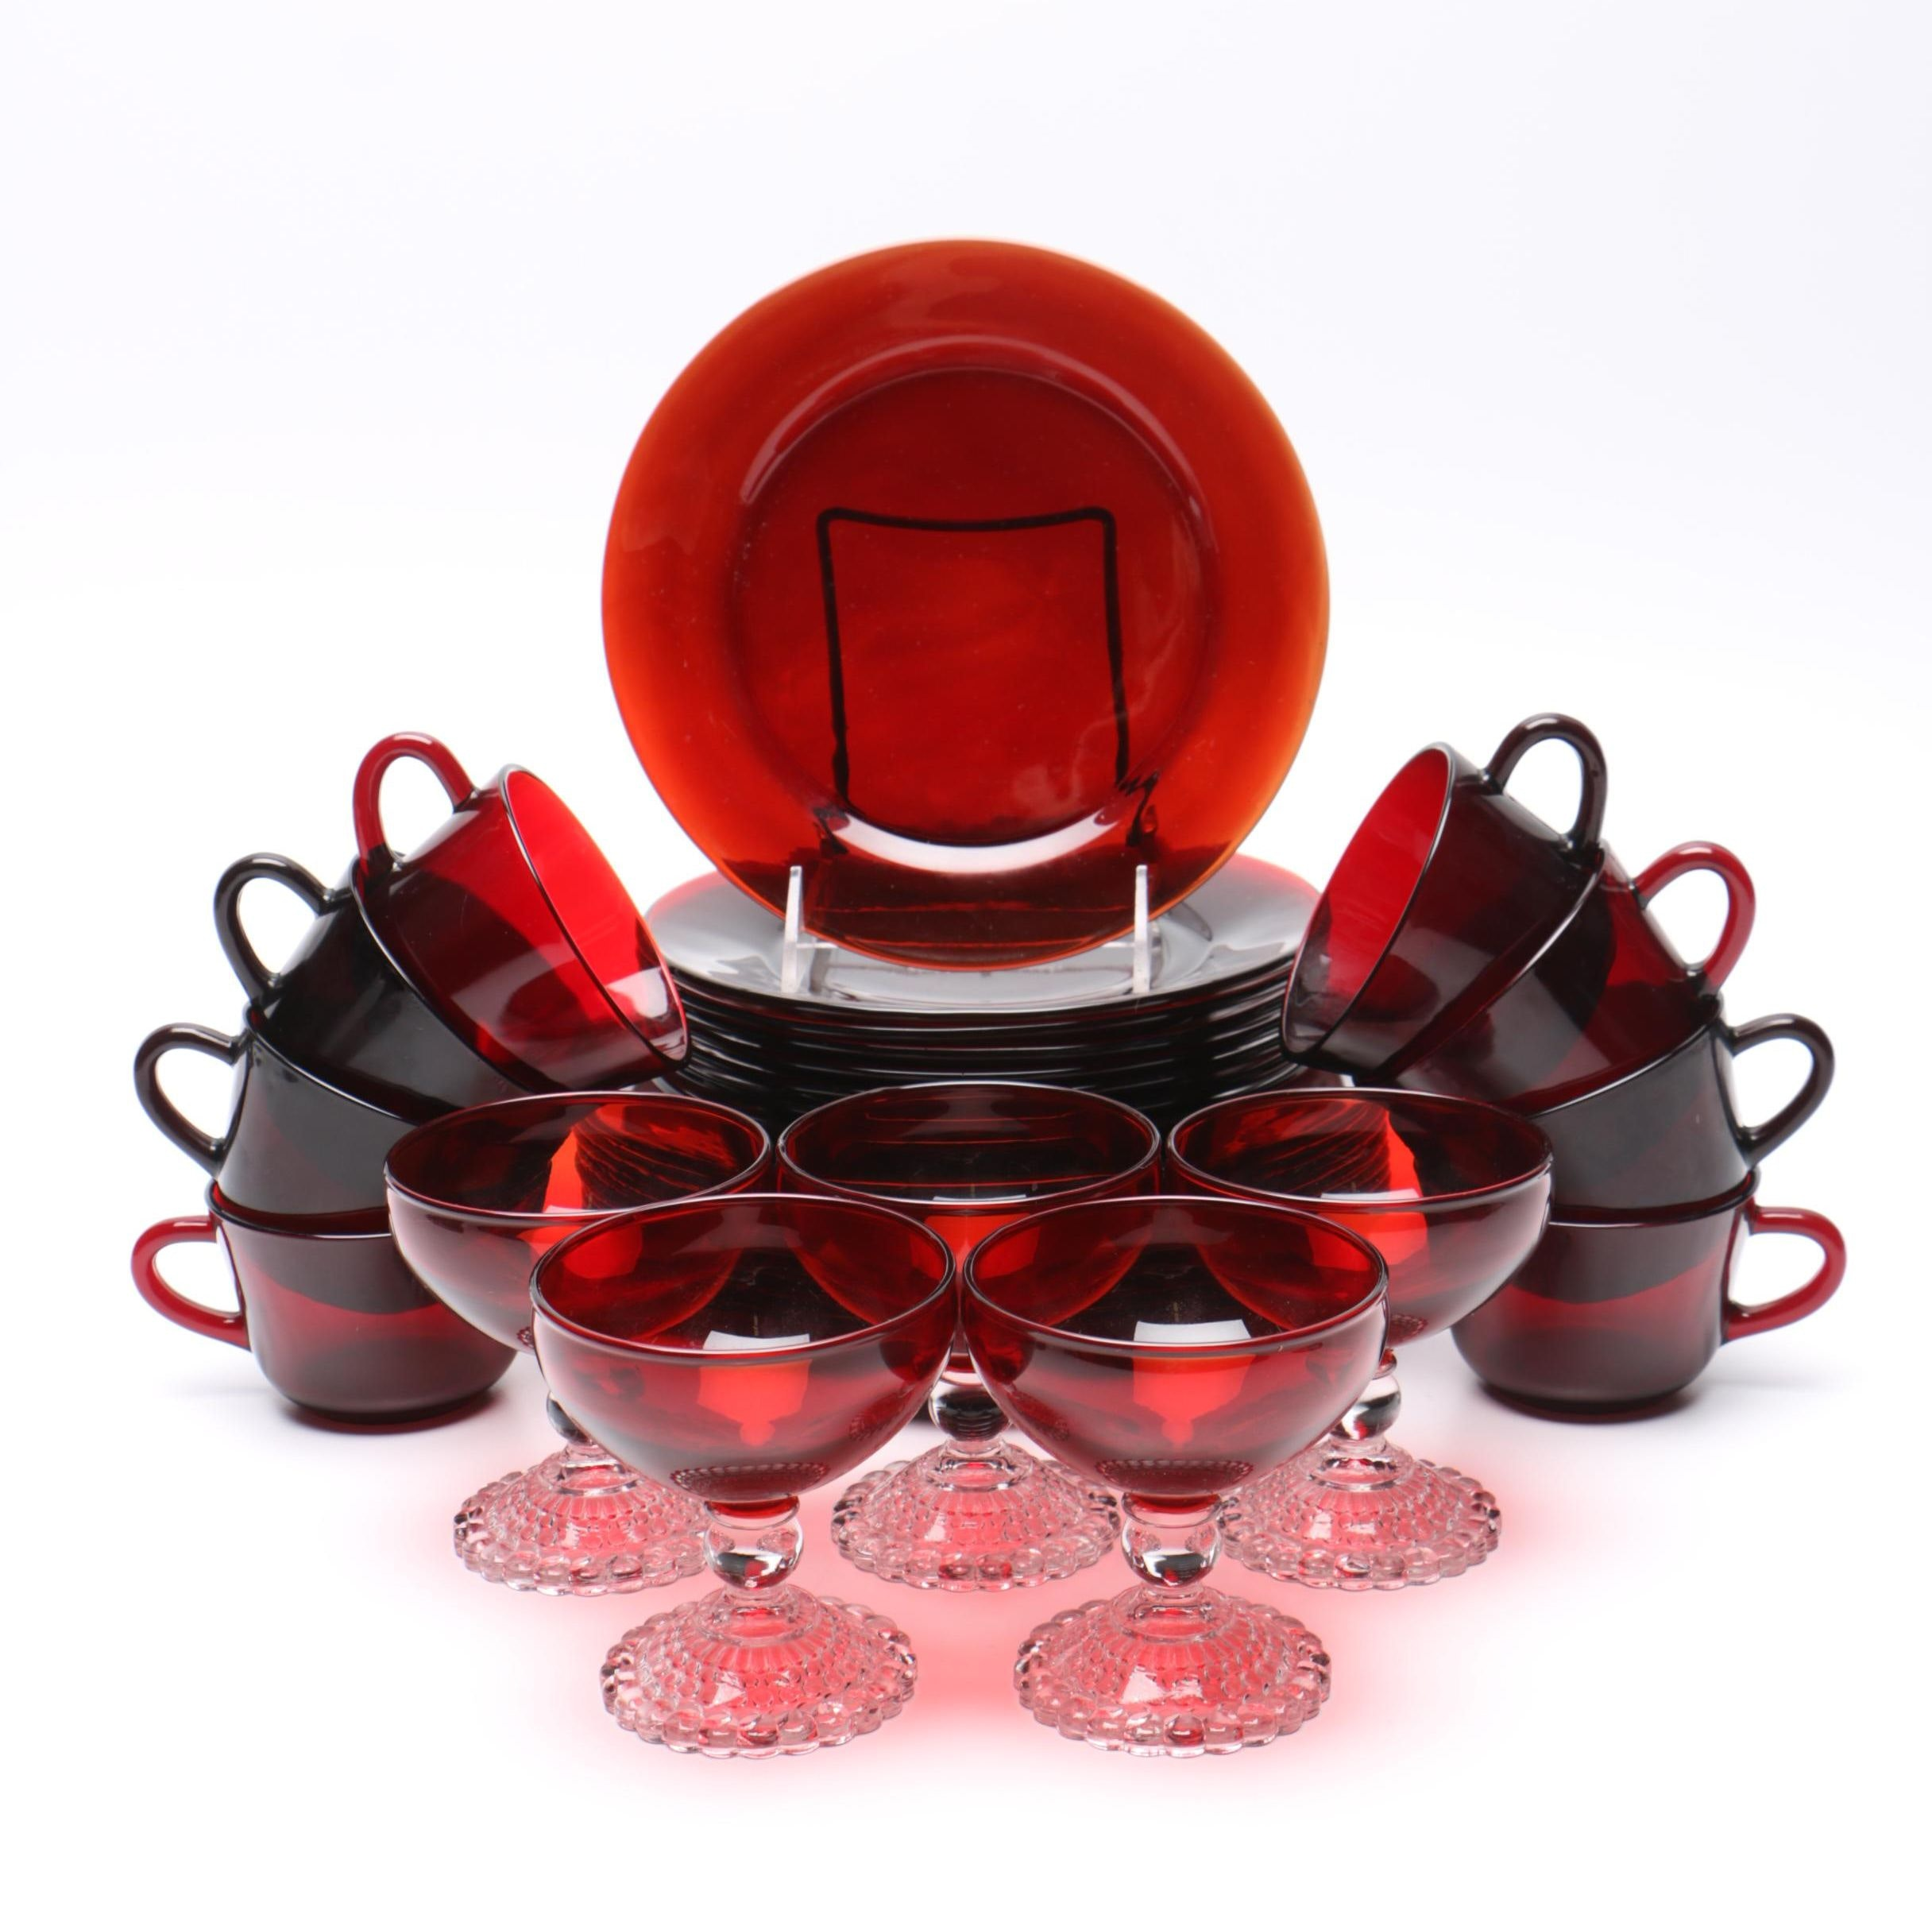 Assortment of Red Tinted Glass Tableware